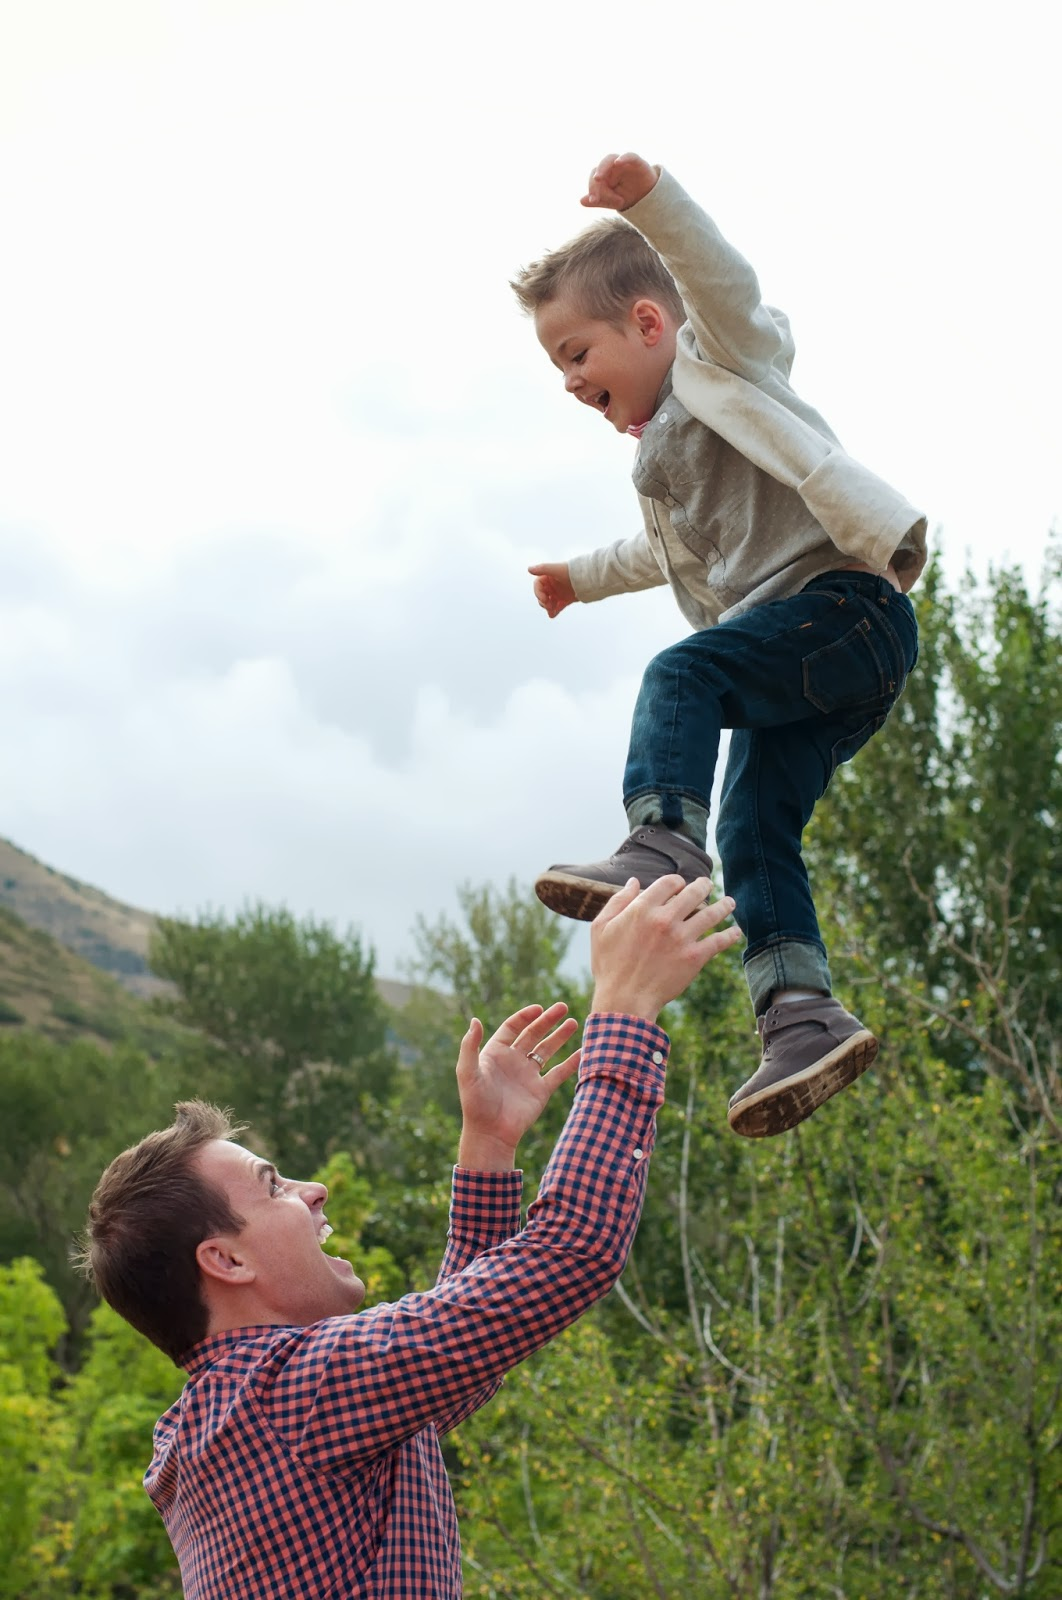 utah photography, utah photographer, utah family photographer,j&h photography